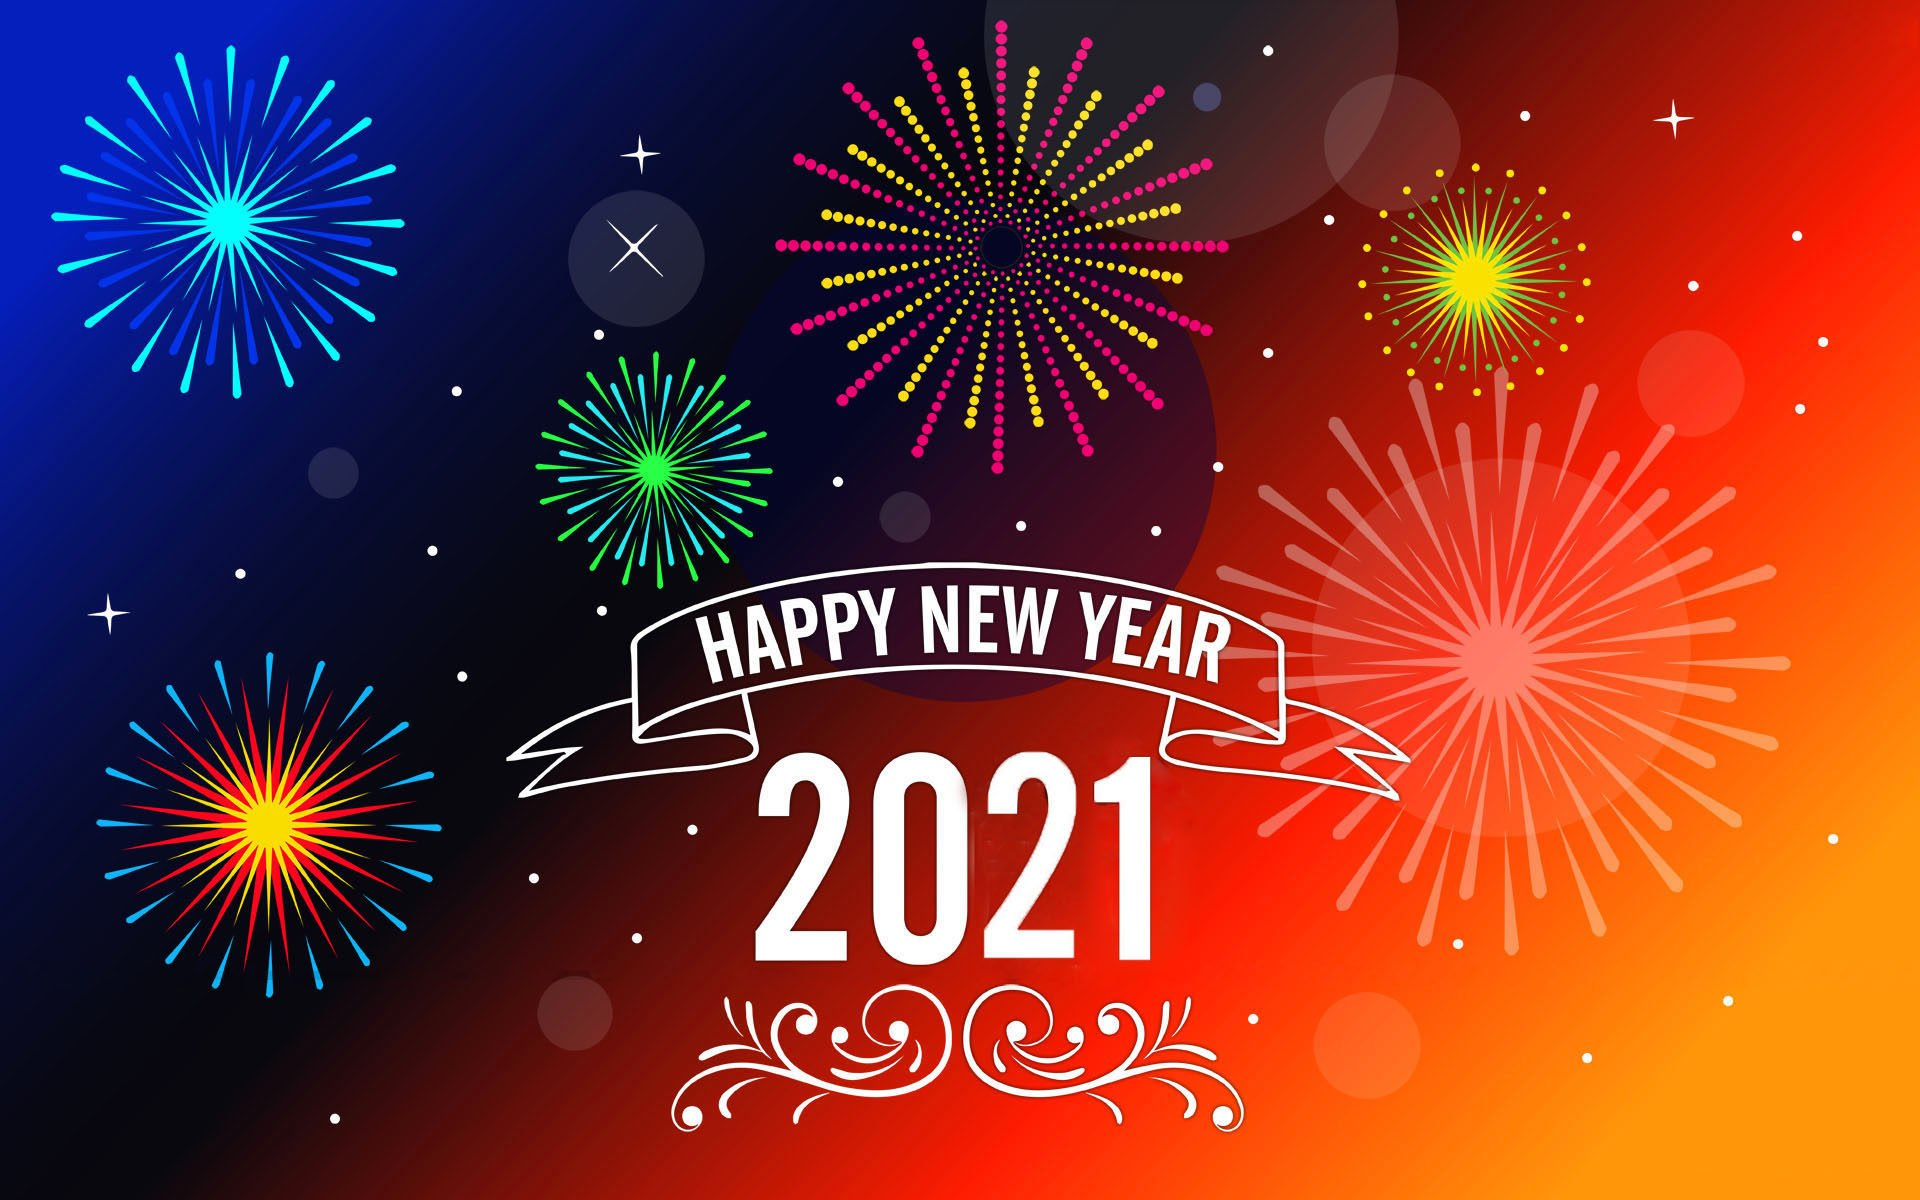 Happy New Year 2021 Messages Greeting Card Wallpaper Hd For Mobile 1920x1200